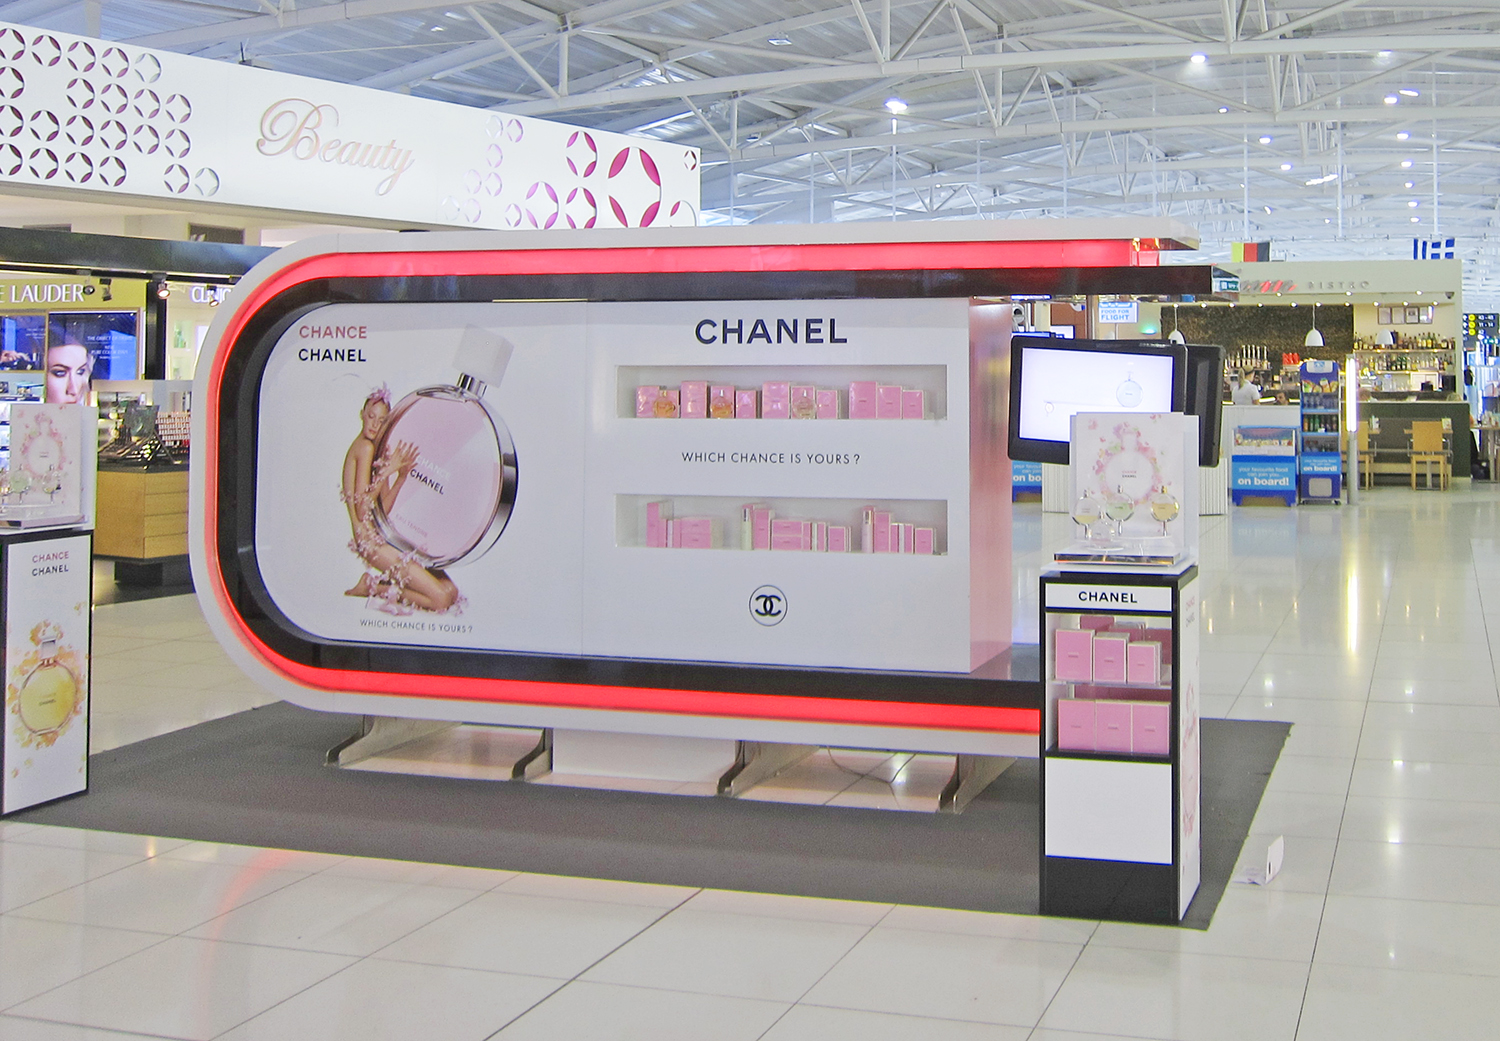 Chanel Chance Fragance Display at an airport